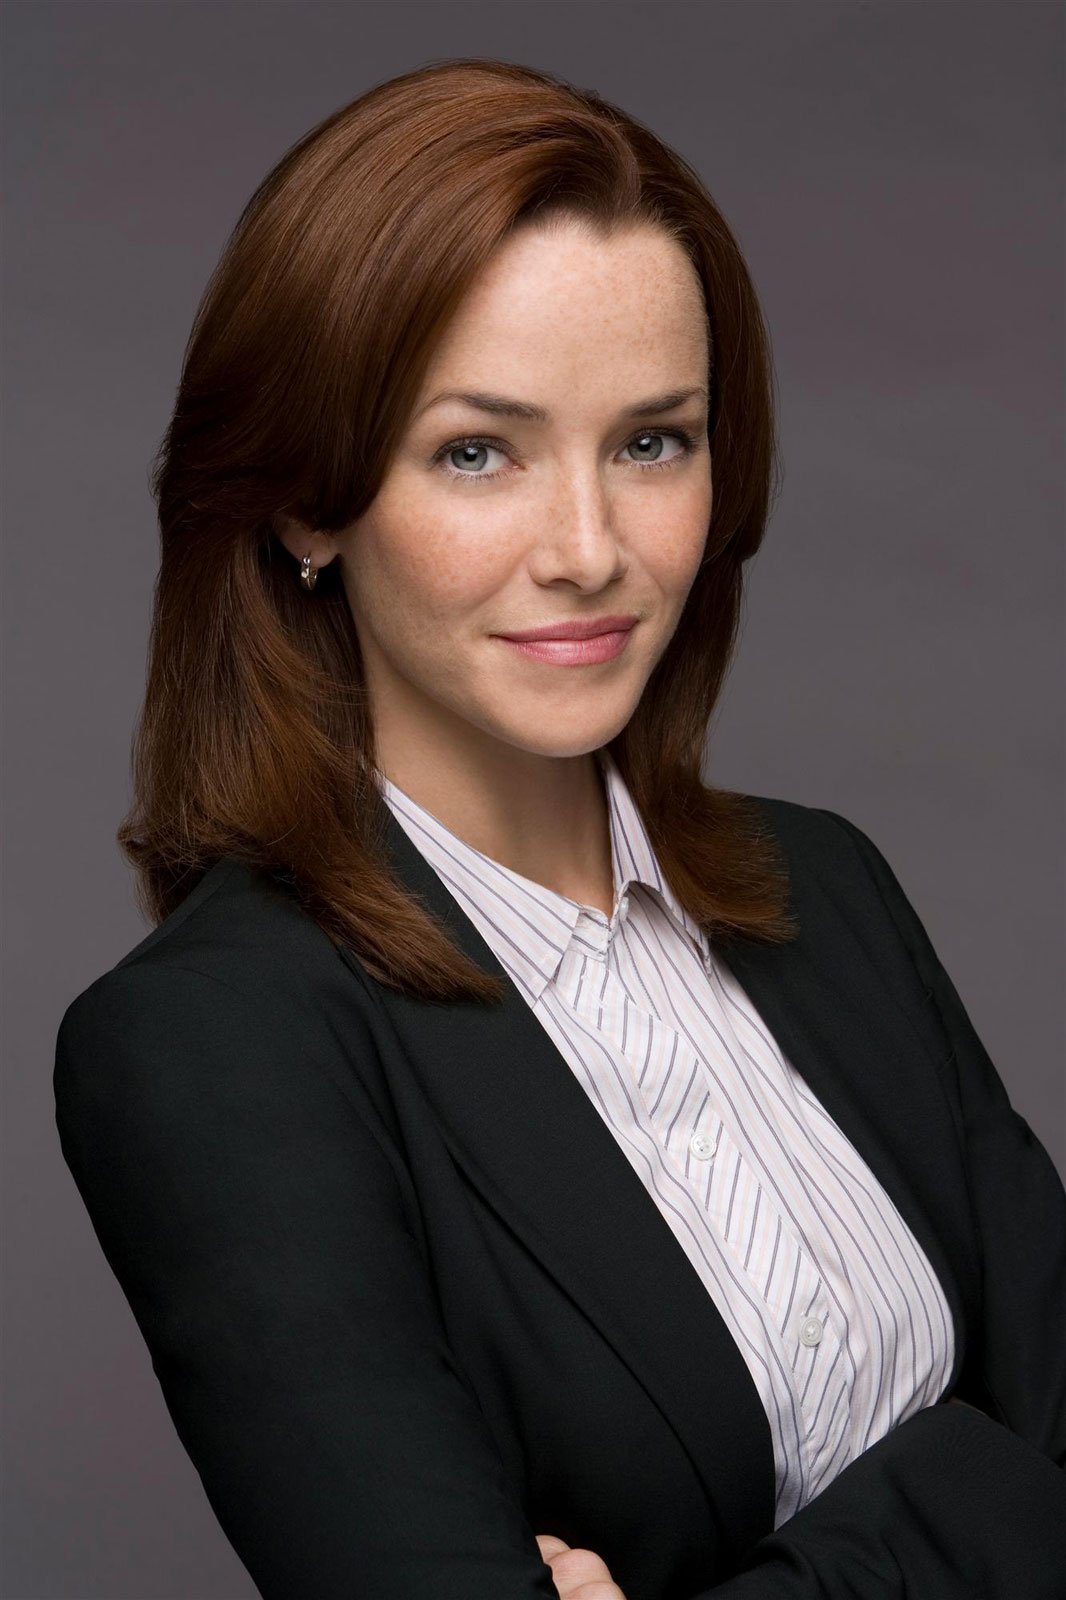 annie wersching height